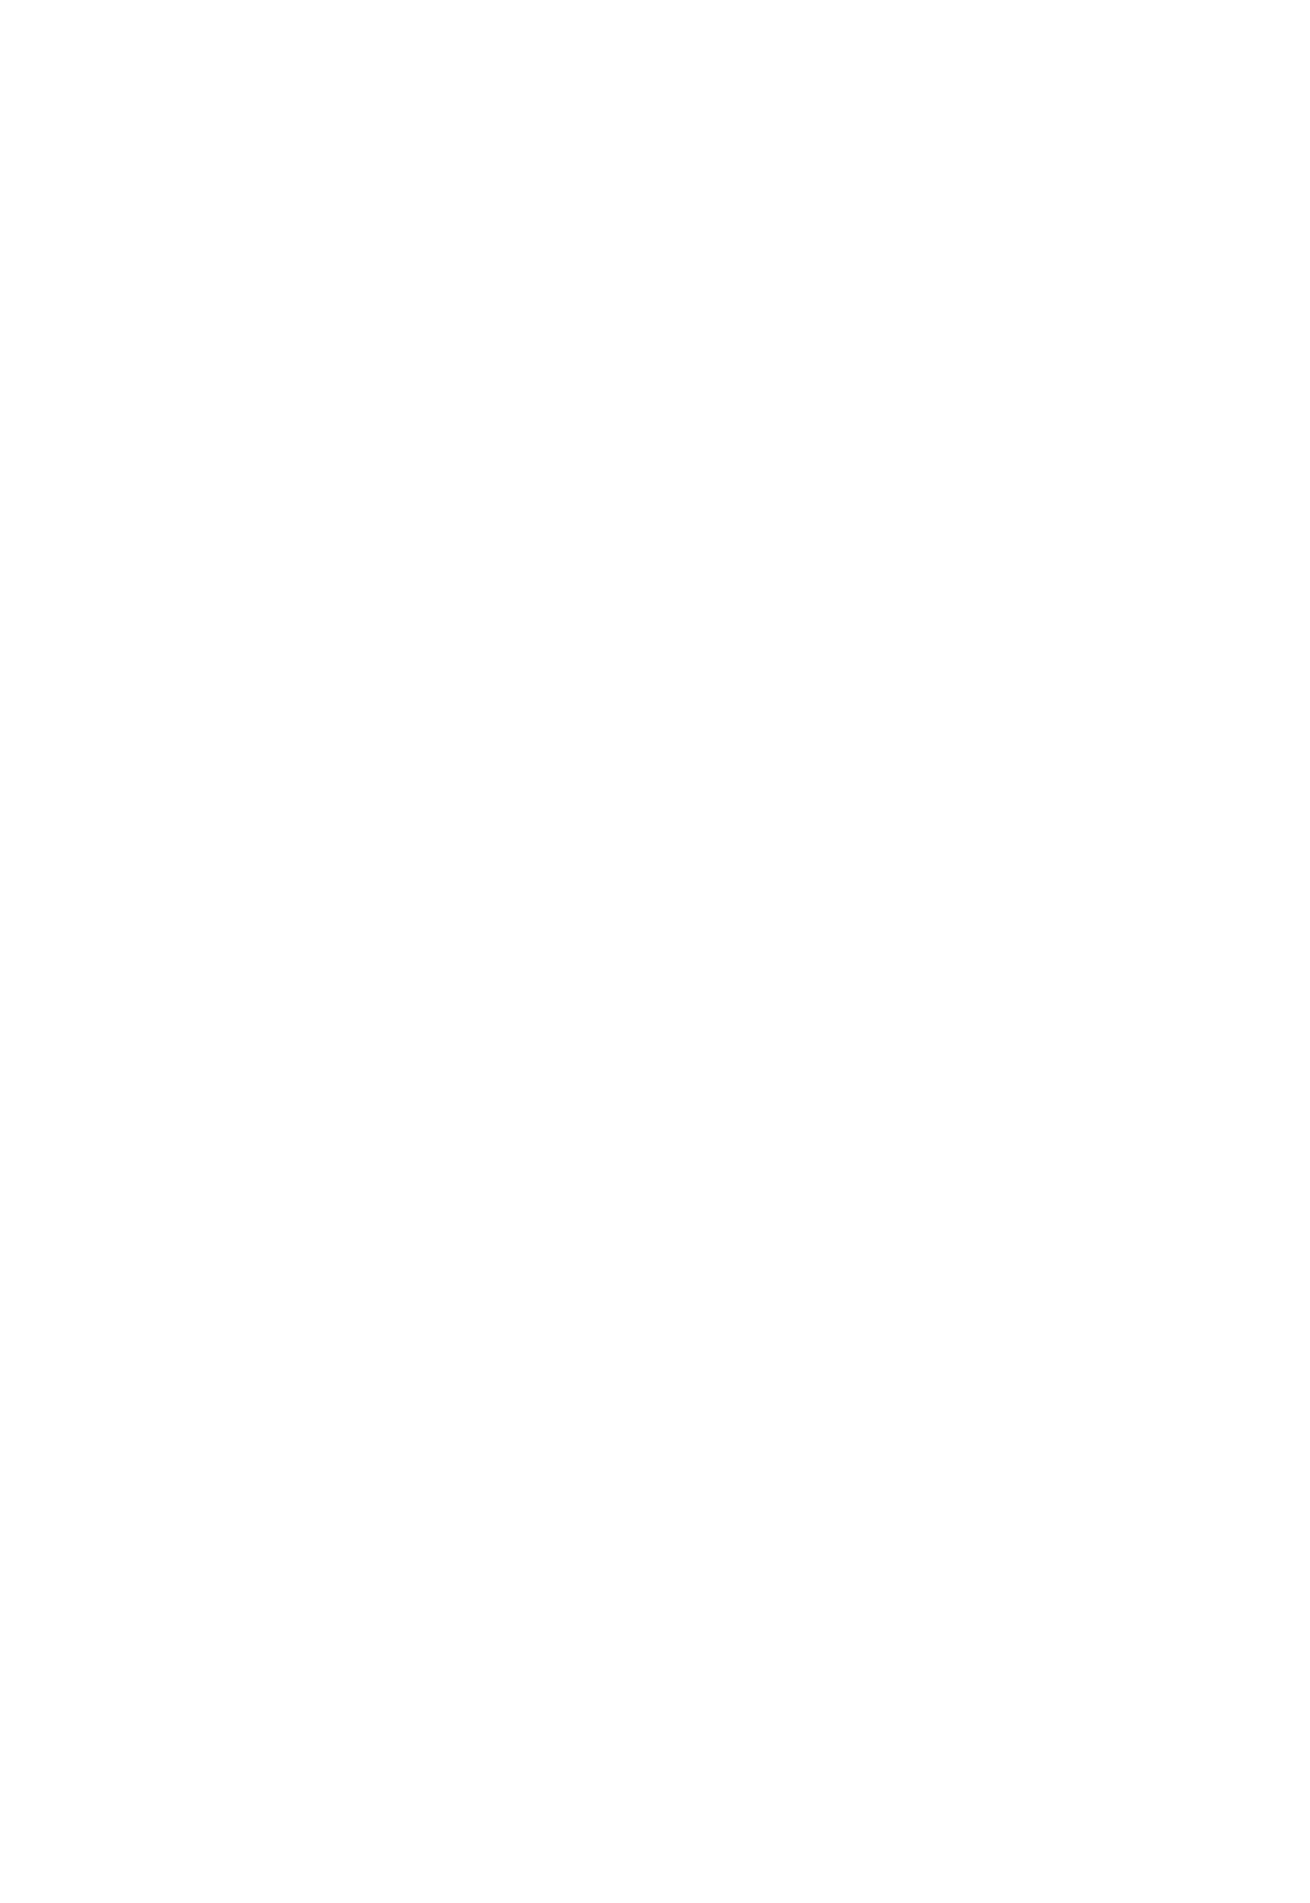 Queen's Award for Enterprise 2020 - Innovation